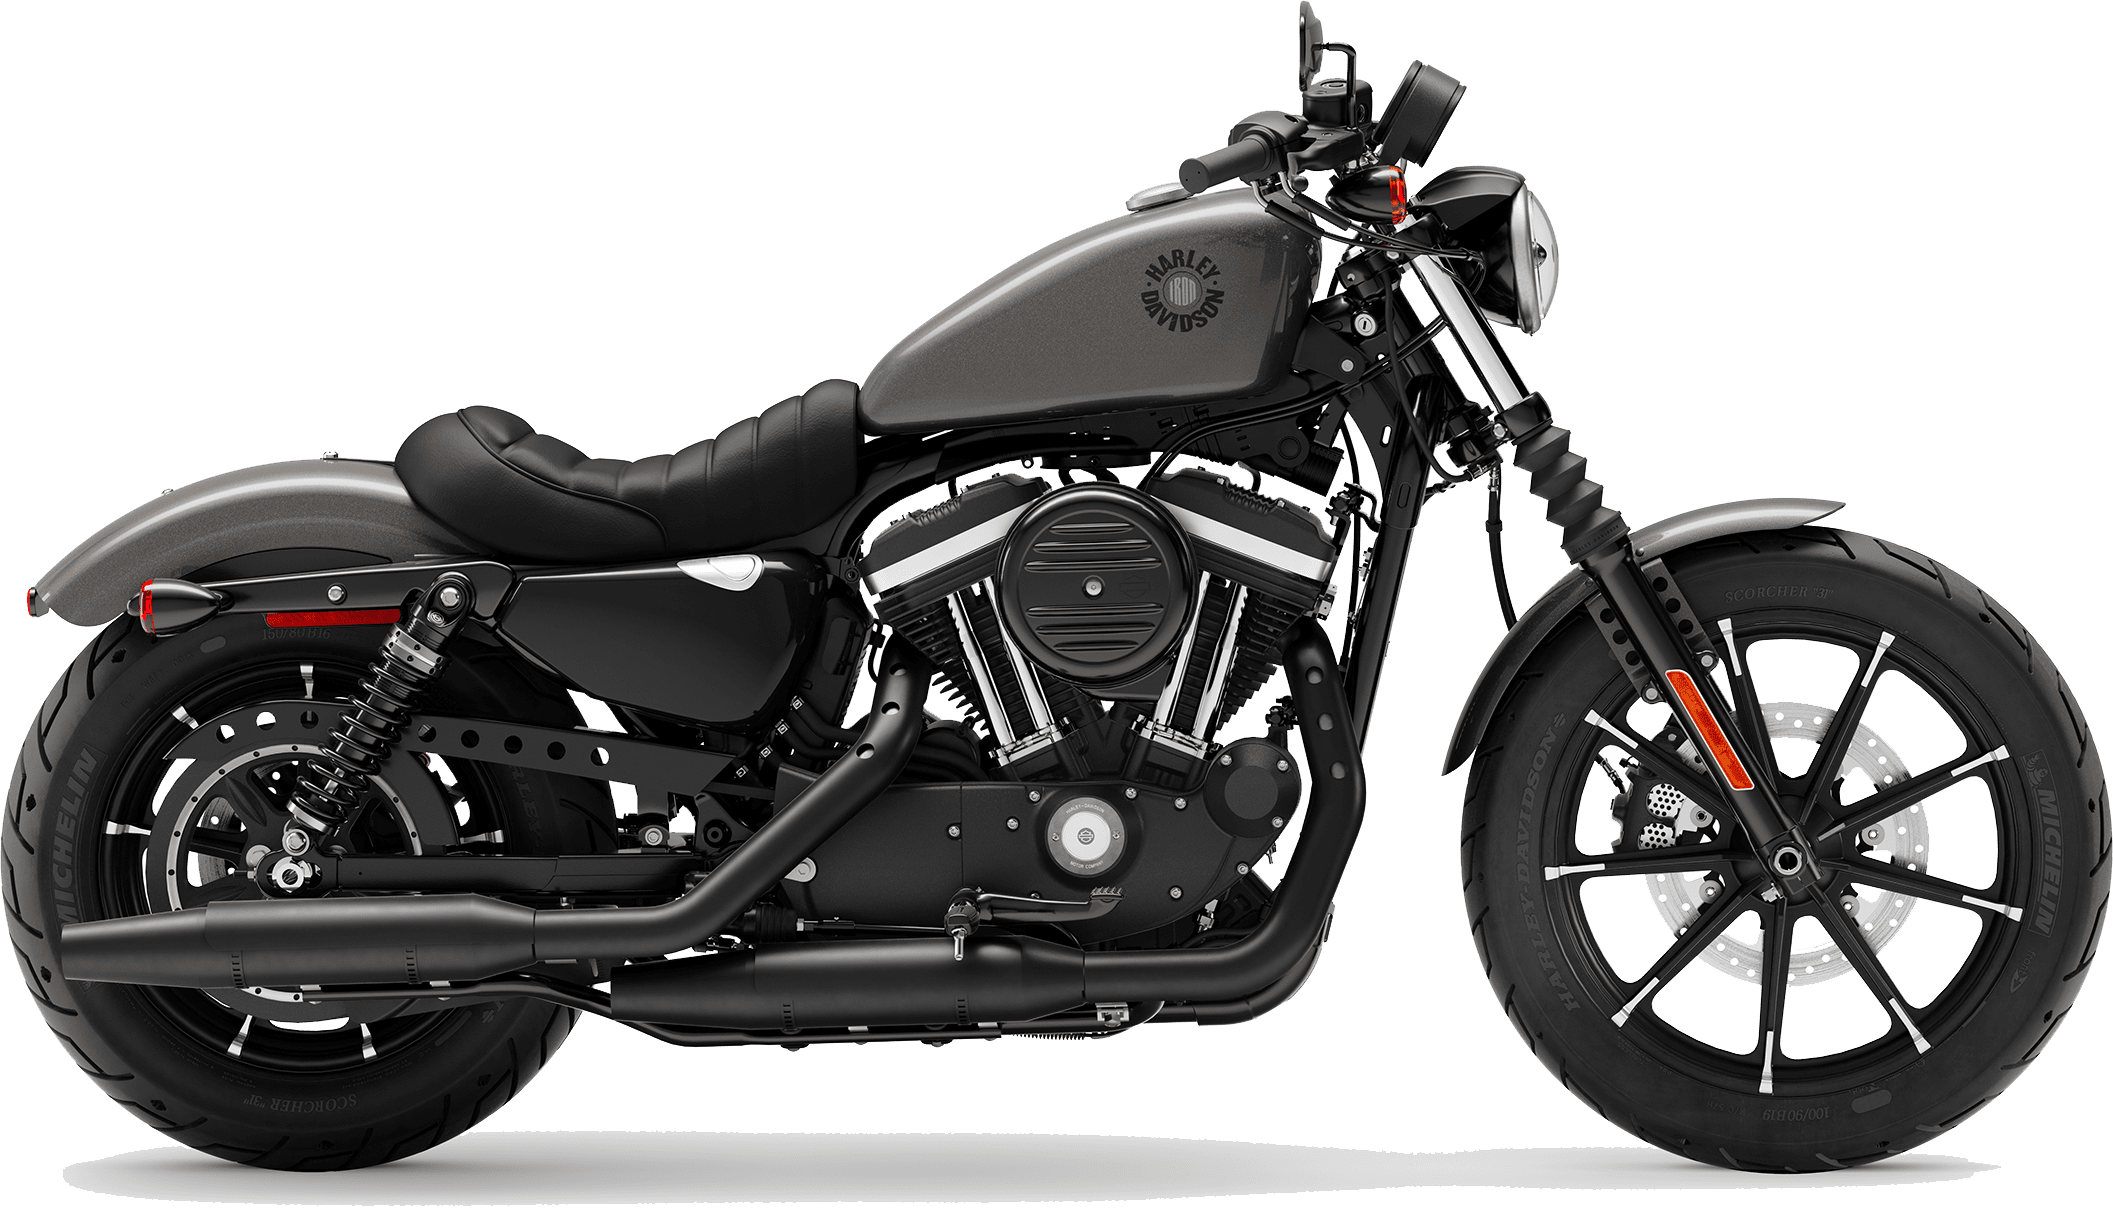 2019 Harley-Davidson H-D Sportster Iron 883 Industrial Grey